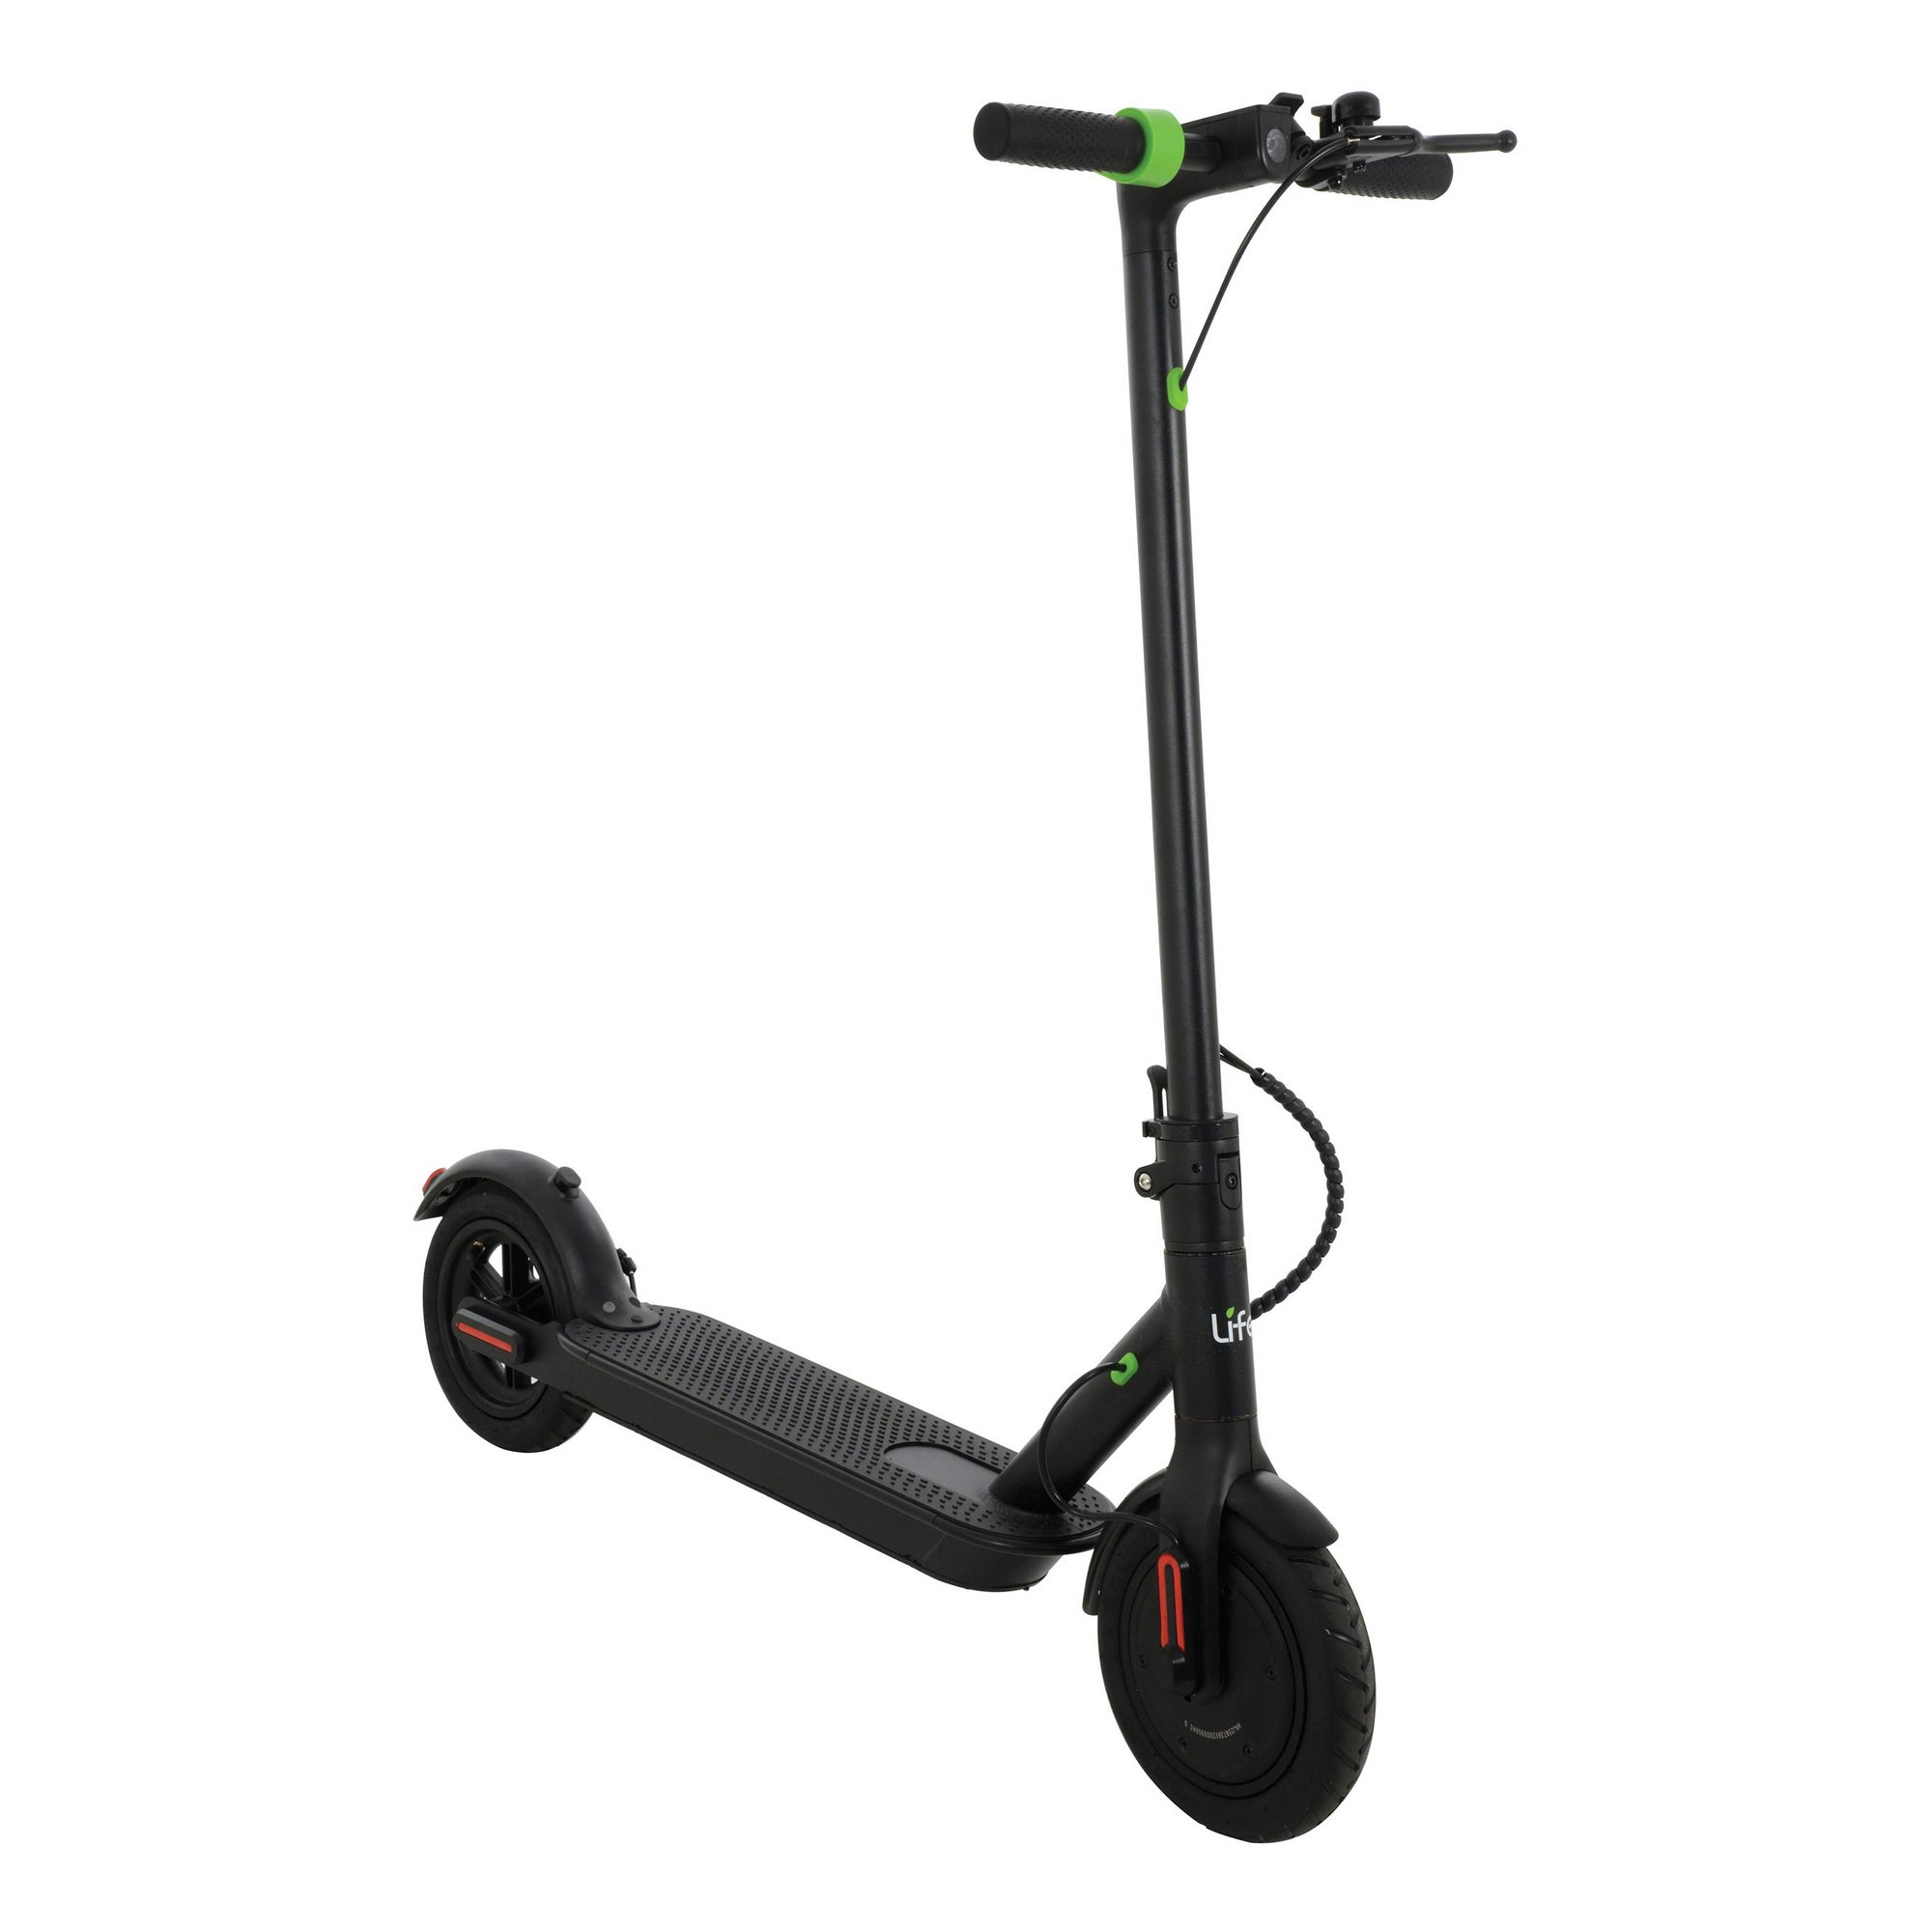 Image of Li-Fe - 250 AIR Lithium Scooter